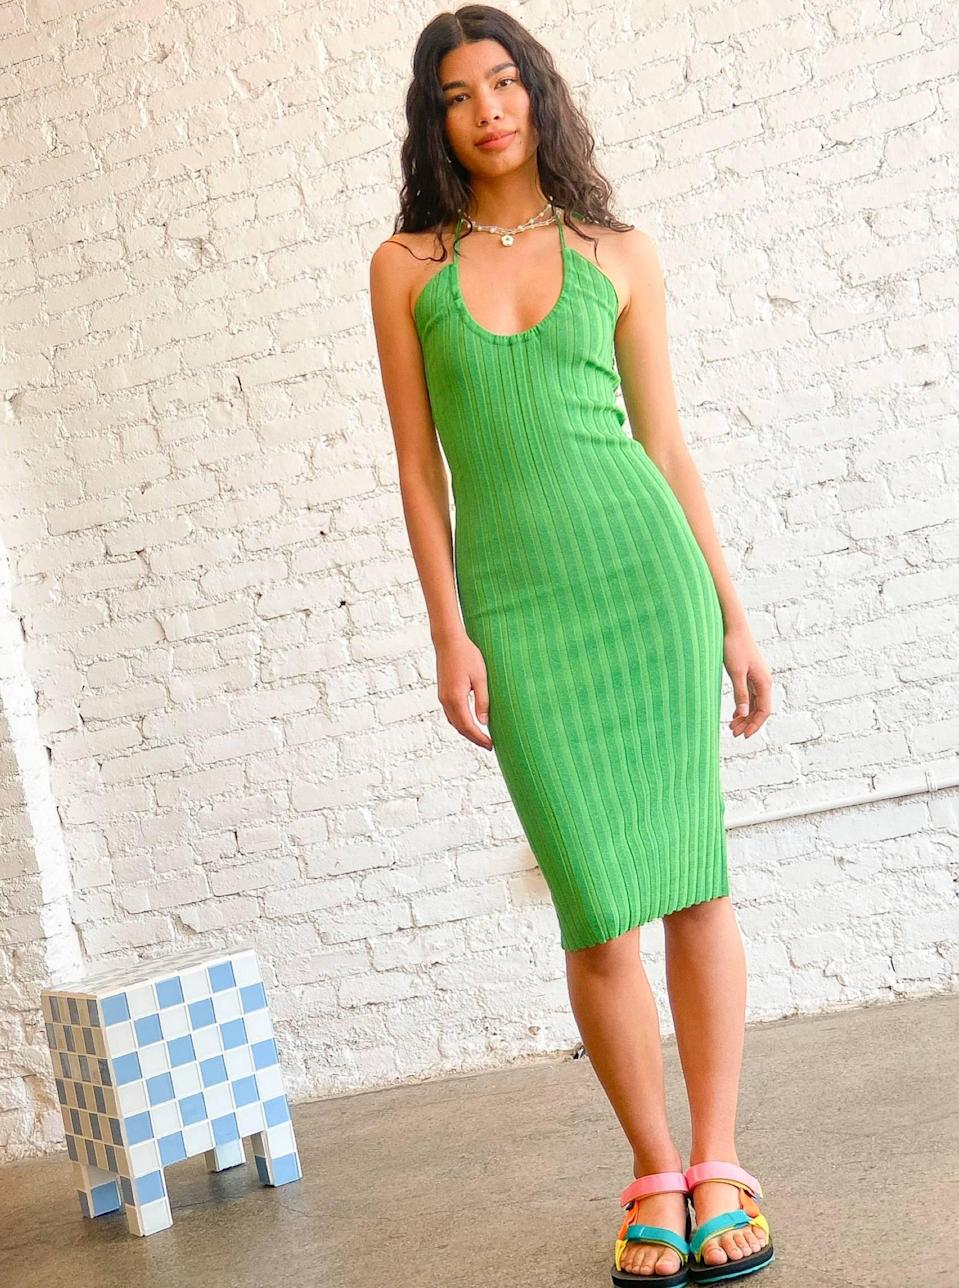 """Paloma Wool is a must for a cool-girl summer, and you'll bring the fun wherever you go with this bright green hue. $173, Lisa Says Gah. <a href=""""https://lisasaysgah.com/collections/dresses/products/jenny-halter-knit-dress"""" rel=""""nofollow noopener"""" target=""""_blank"""" data-ylk=""""slk:Get it now!"""" class=""""link rapid-noclick-resp"""">Get it now!</a>"""